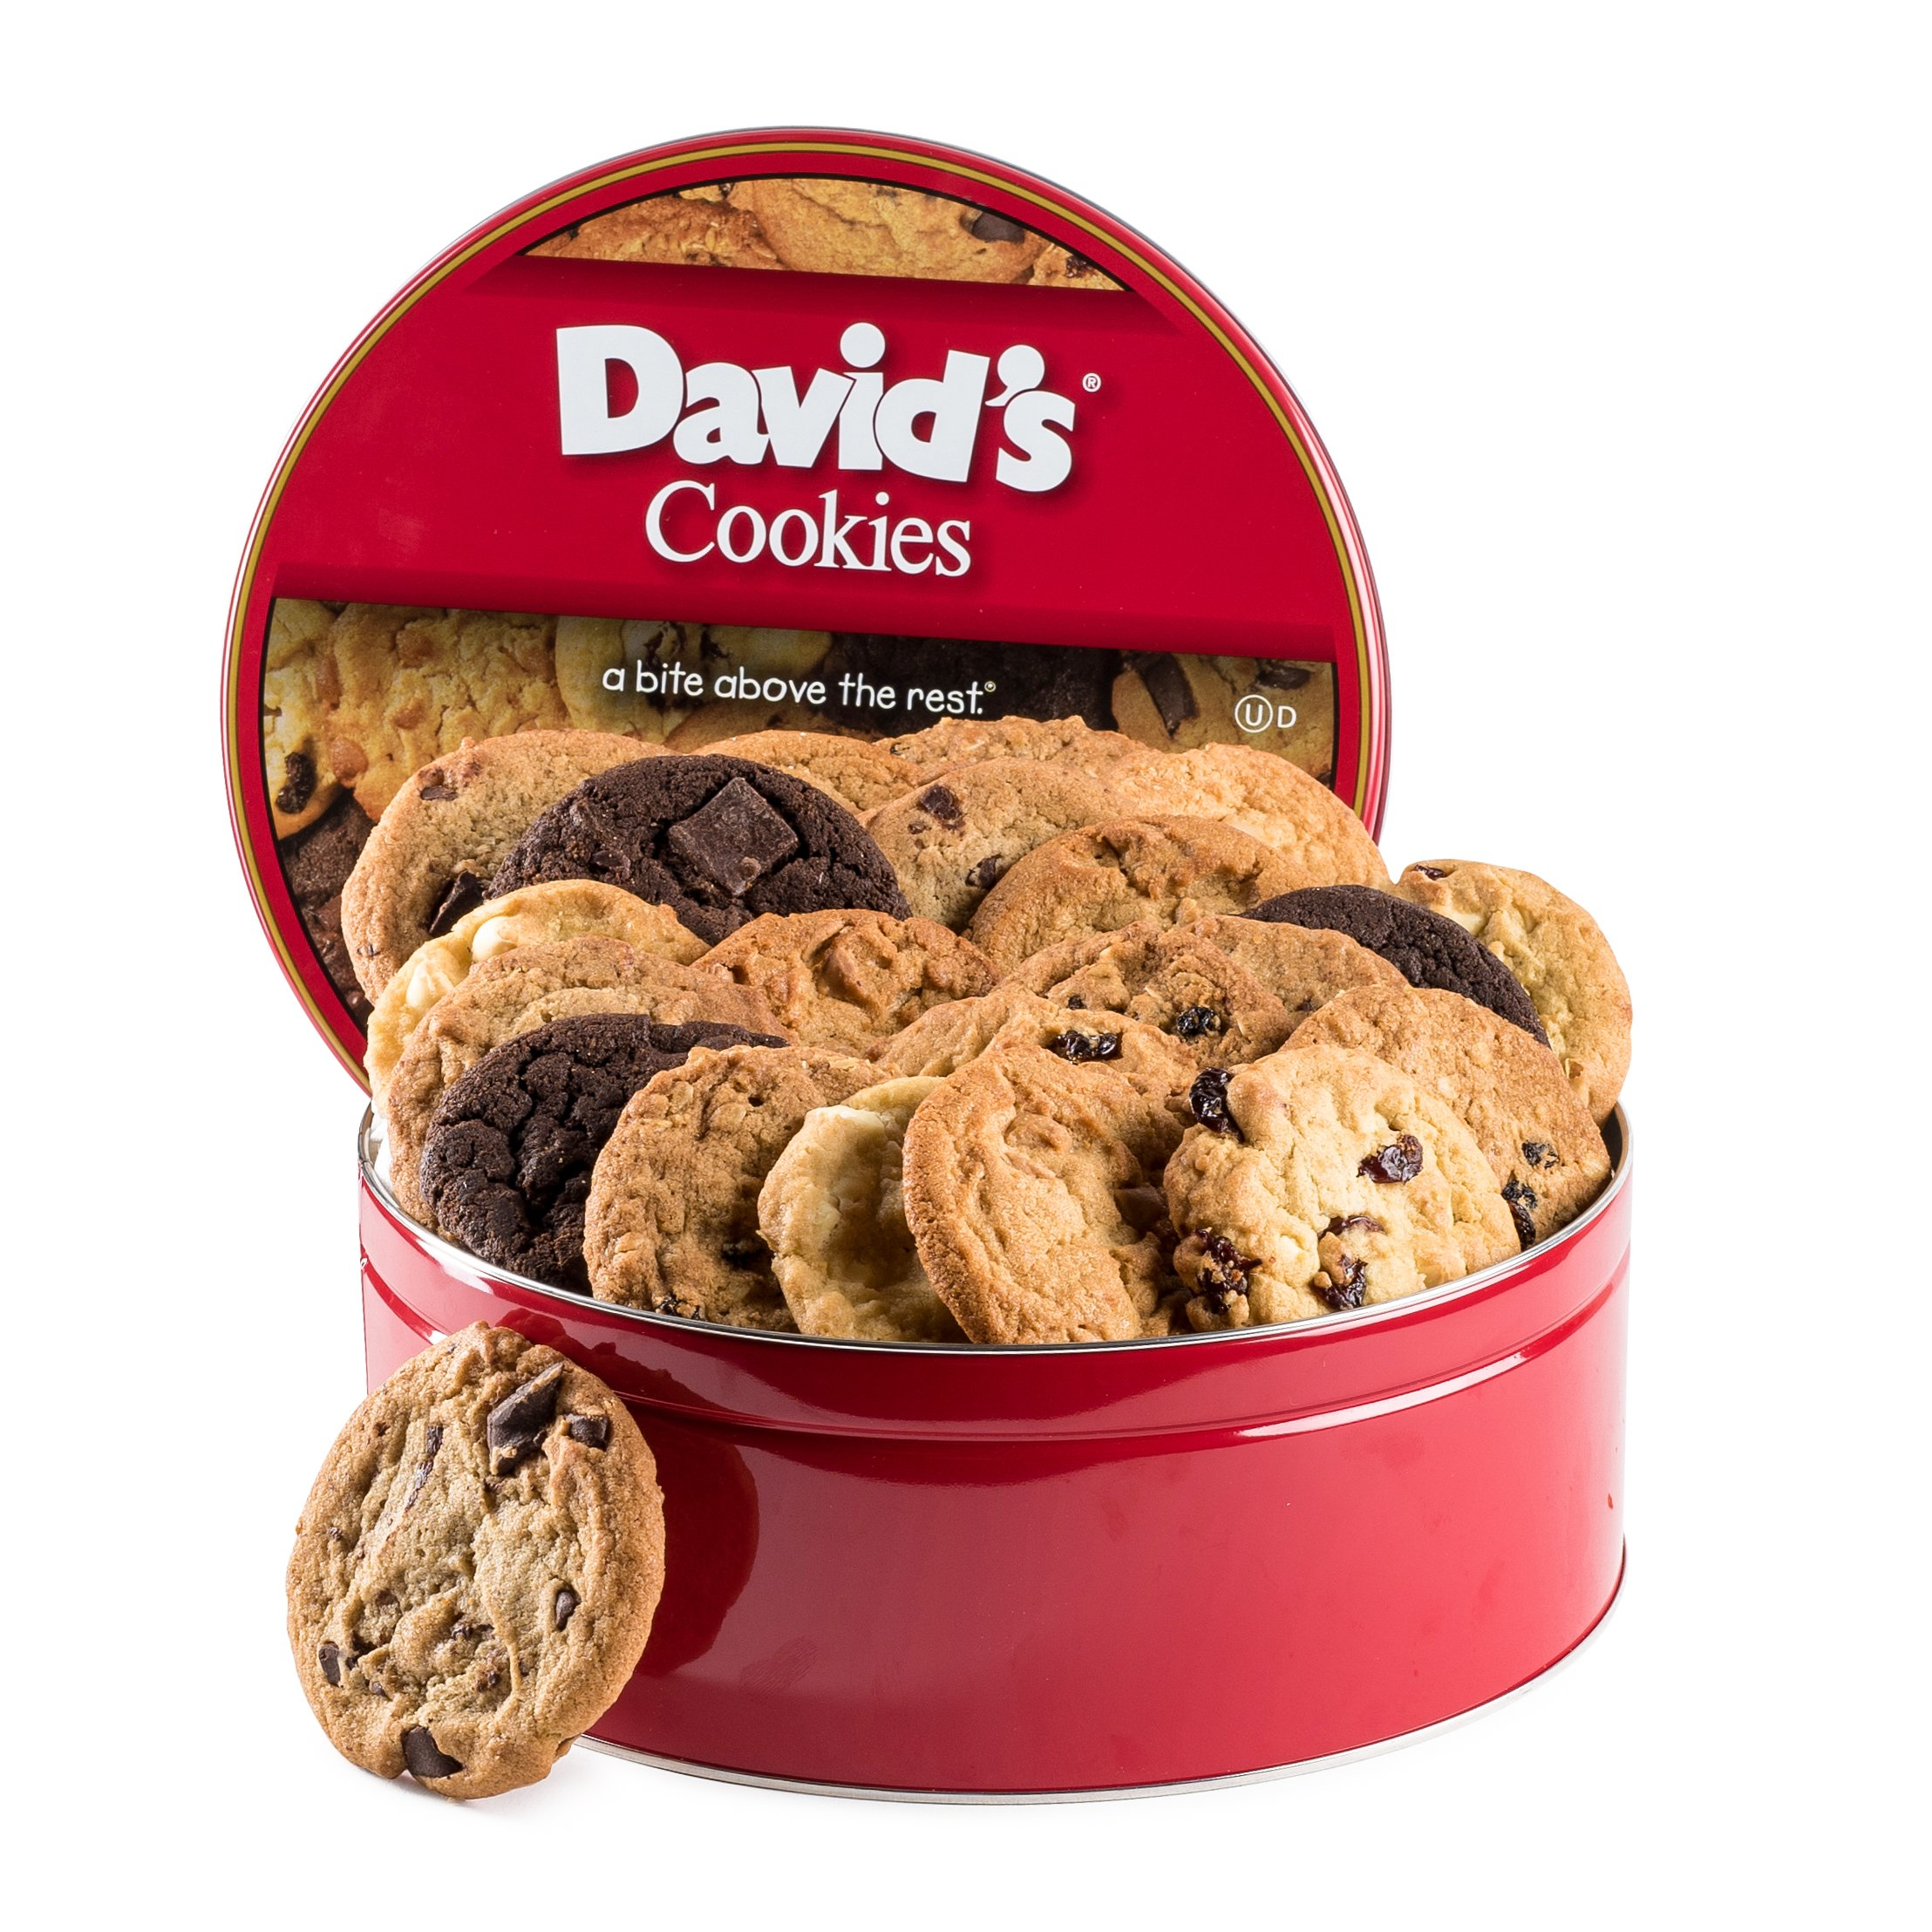 David's Cookies Assorted Flavors Fresh Baked Cookies 2 lb. Gift Tin